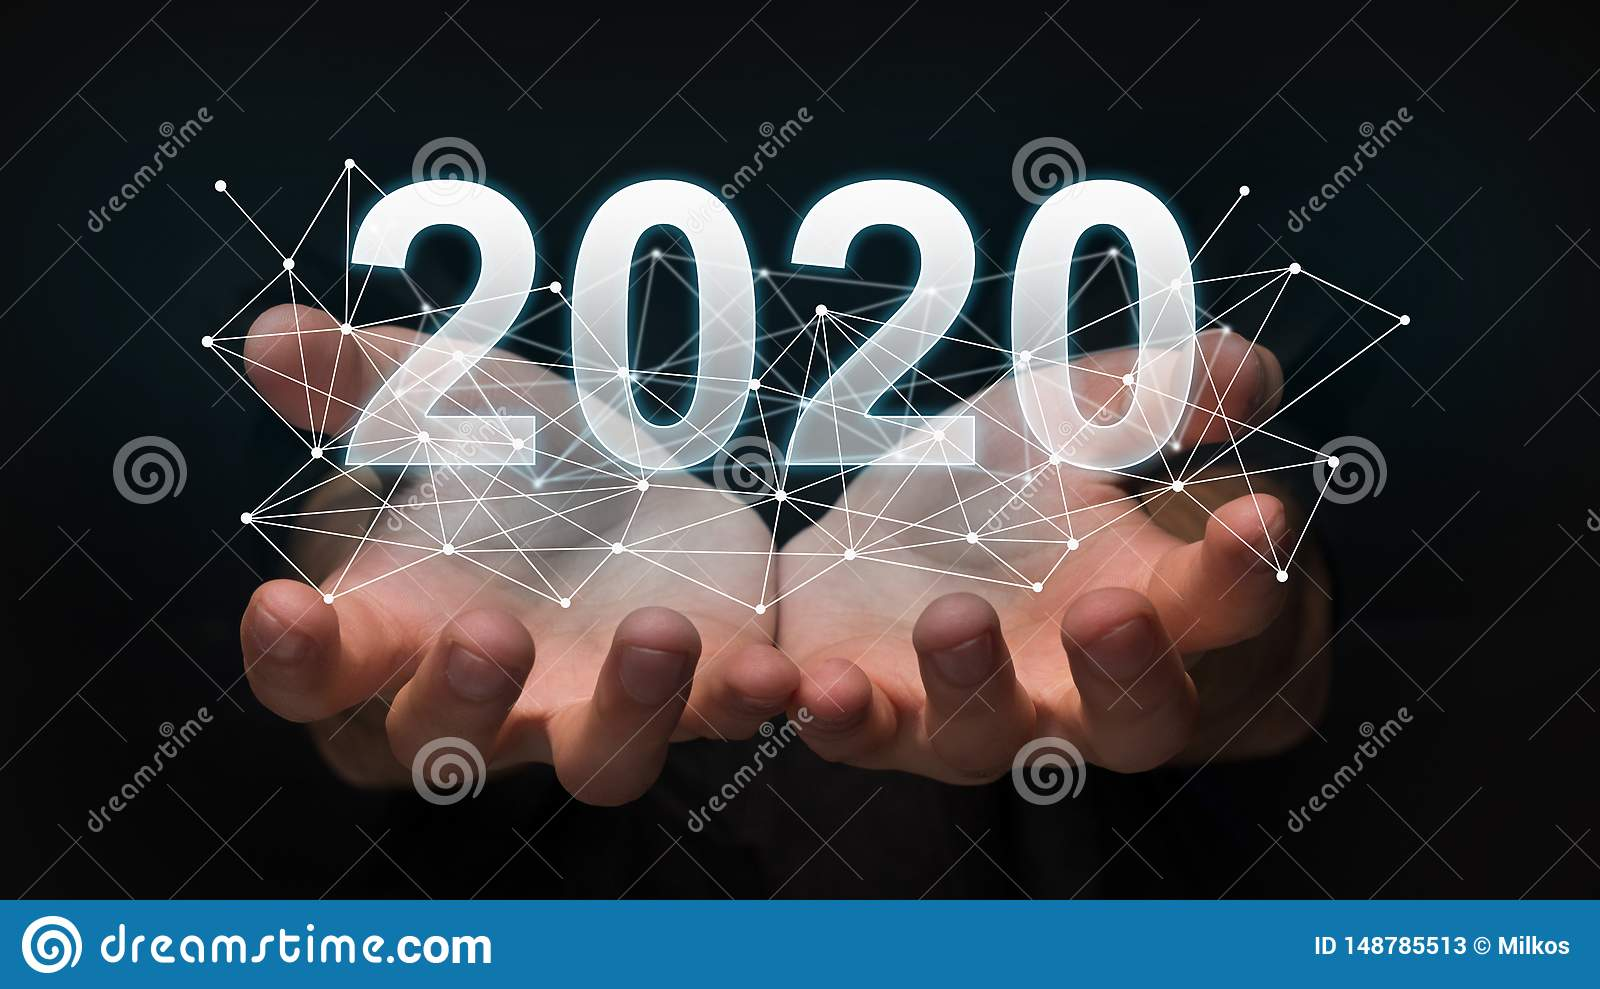 New 2020 year technology concept.